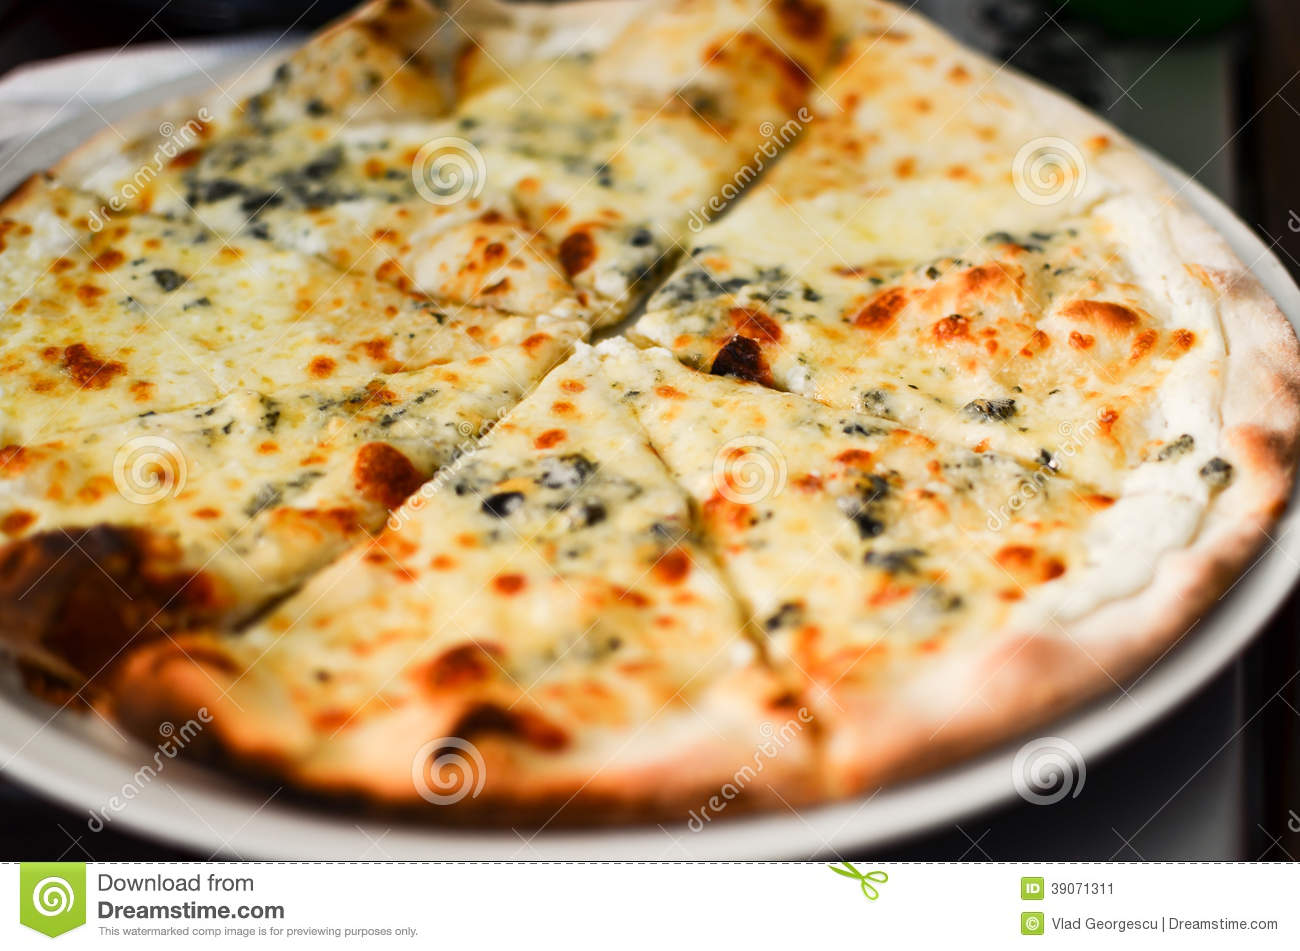 pizza quattro formaggi stock image image of ingredient. Black Bedroom Furniture Sets. Home Design Ideas